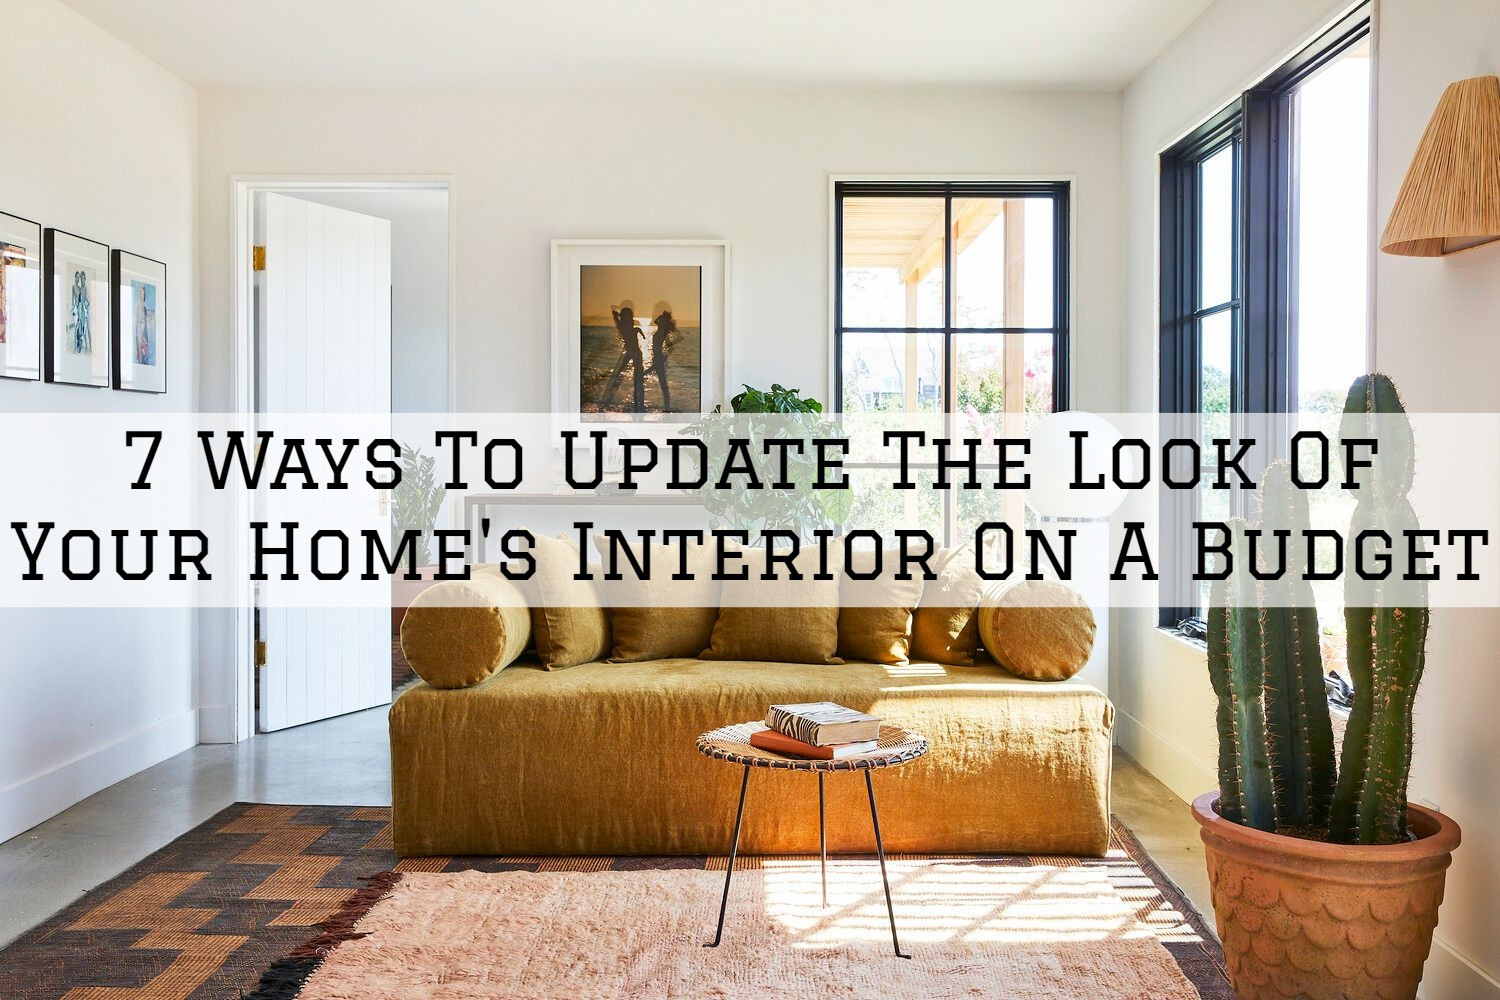 21-09-2021 Steves Quality Painting And Washing Princeton WI ways to update your home's interior